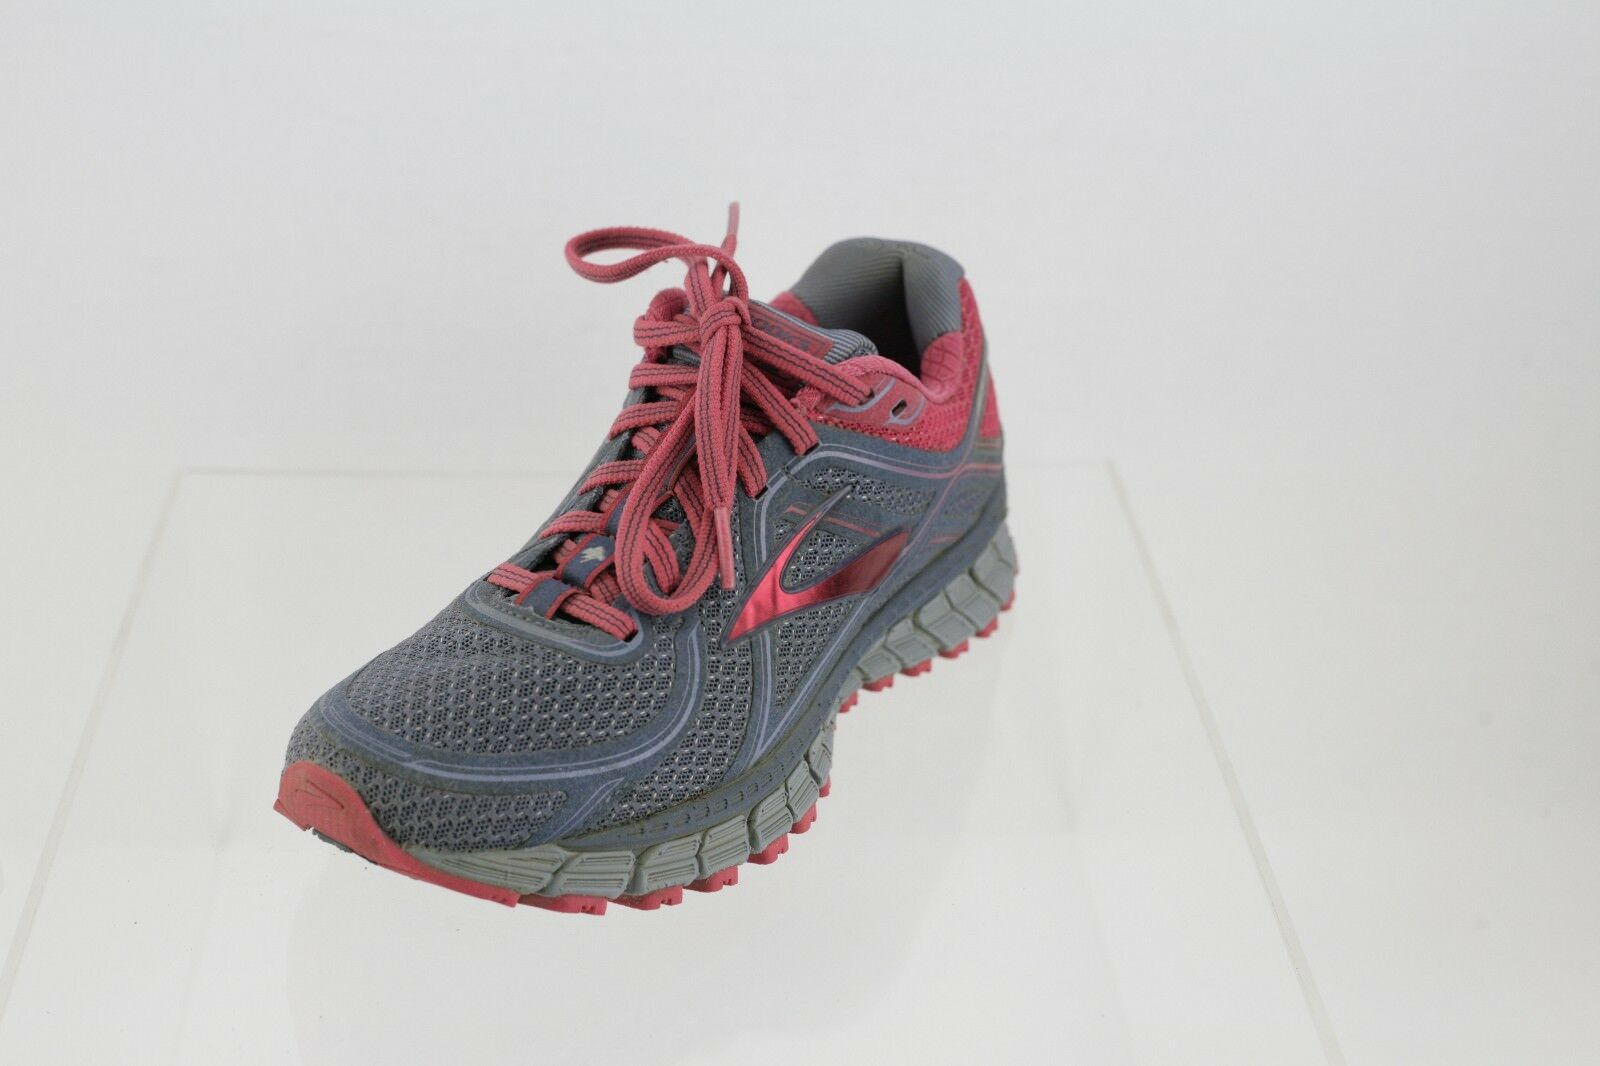 Women's Brooks 1202181B463 Grey Coral Lace-up Running shoes Size 7 M